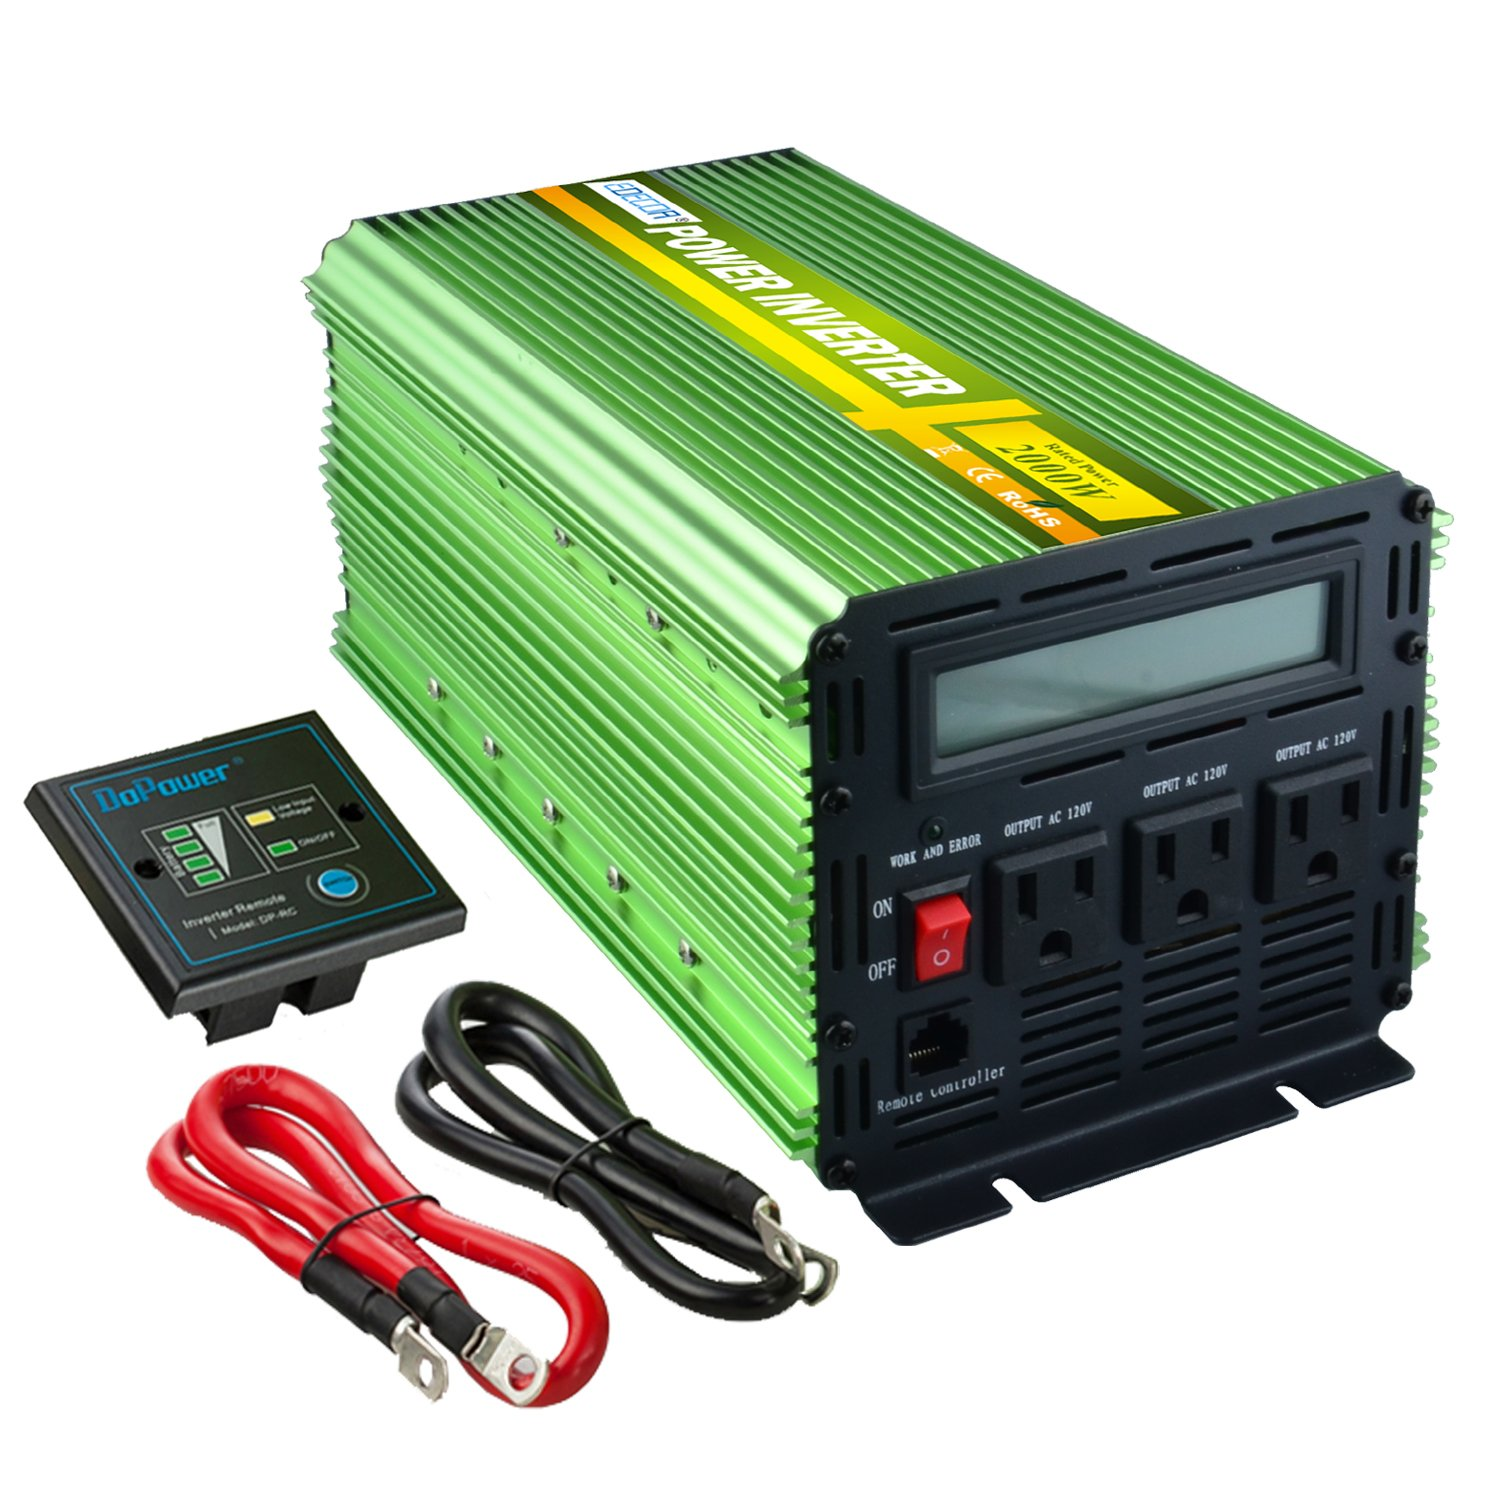 Edeoca 2000W 24V Power Inverter DC 24V to 110V AC Power Converter LCD and Remote Controller by EDECOA